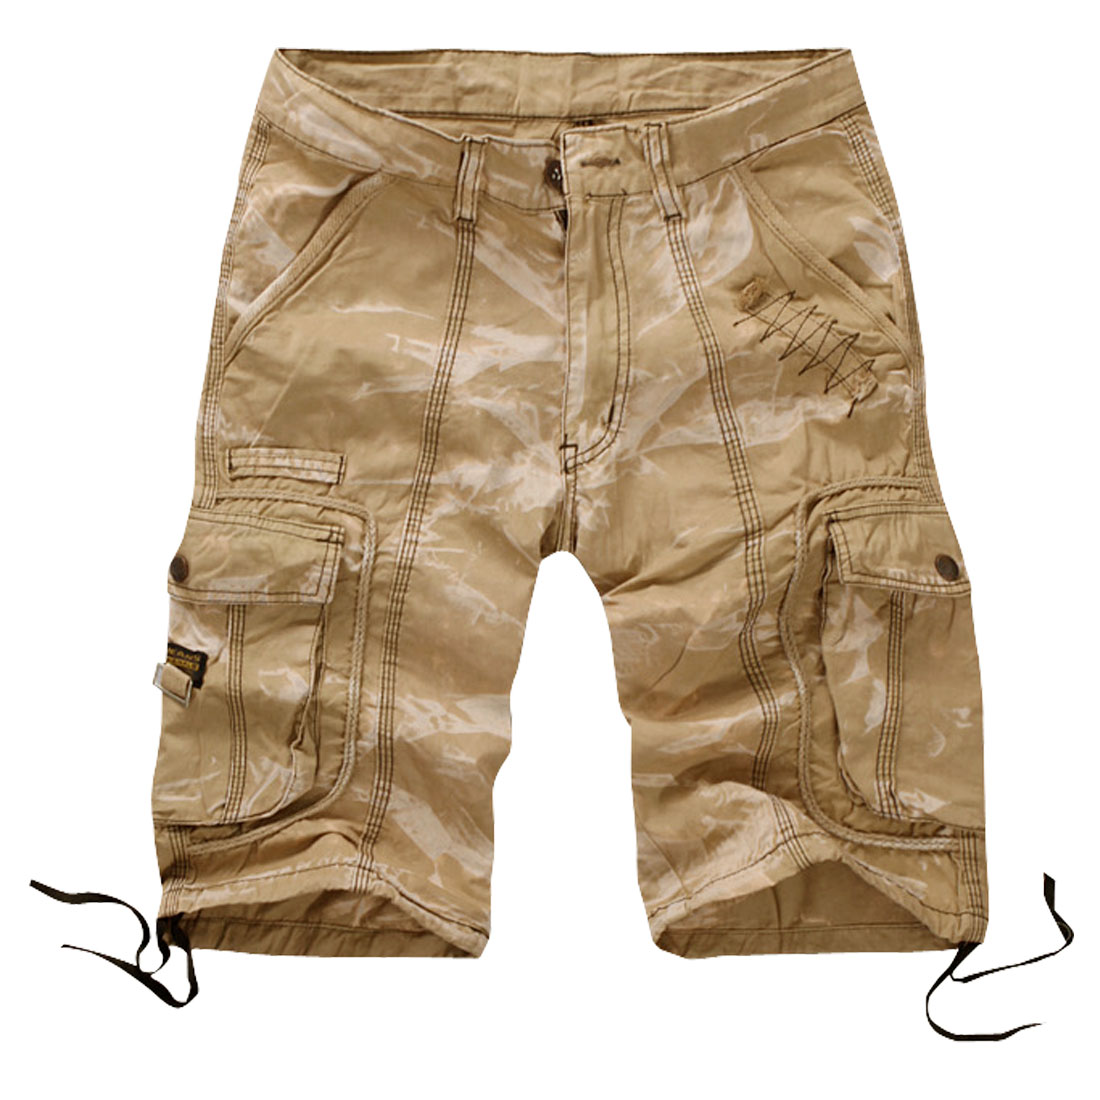 Unique Bargains Mens NEW Stylish Straight Walking Short Pants Cargo Shorts Medium Khaki W32 at Sears.com